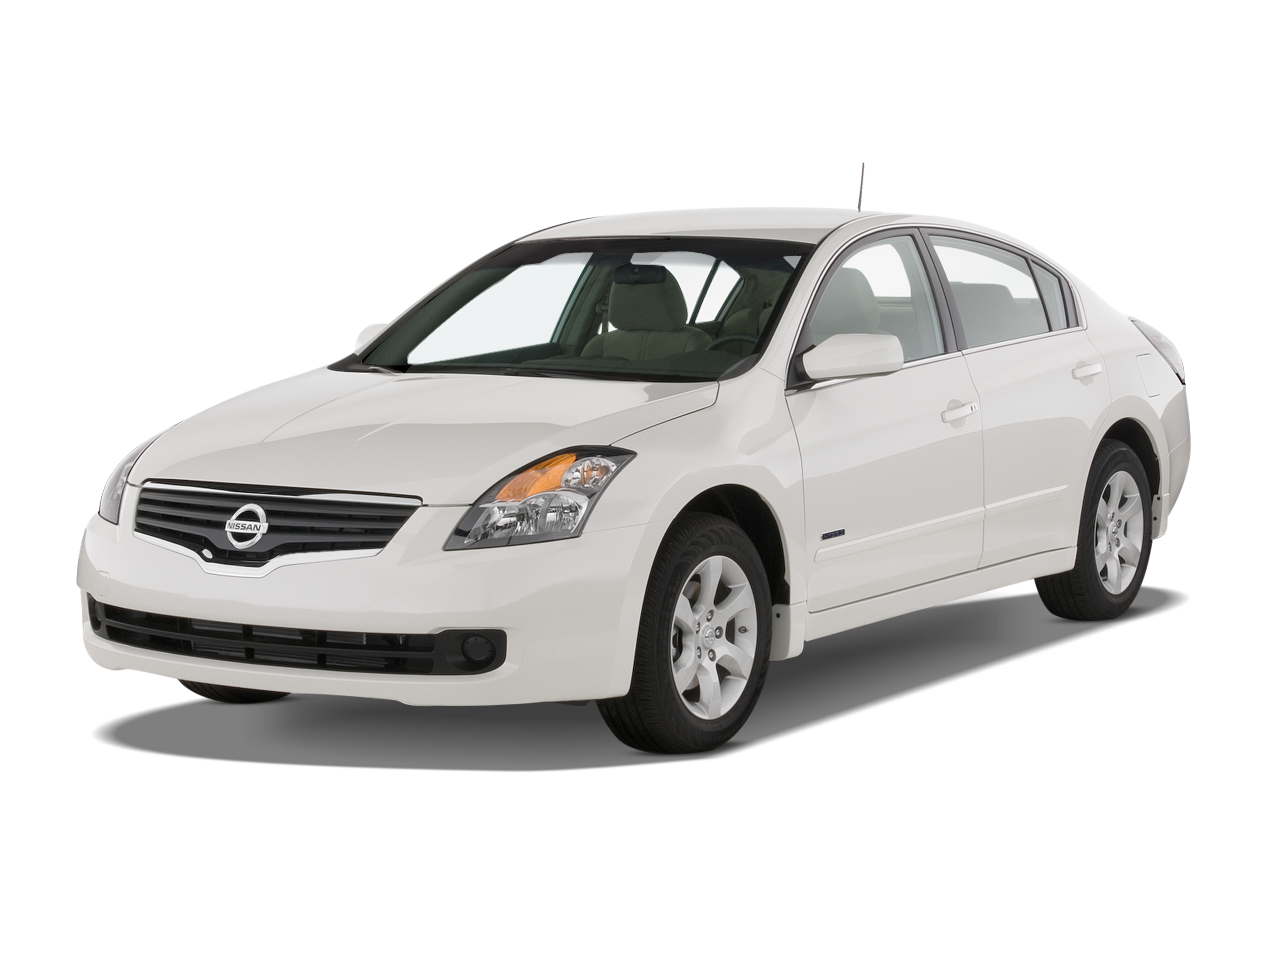 21 The Best 2009 Nissan Altima Price Design And Review